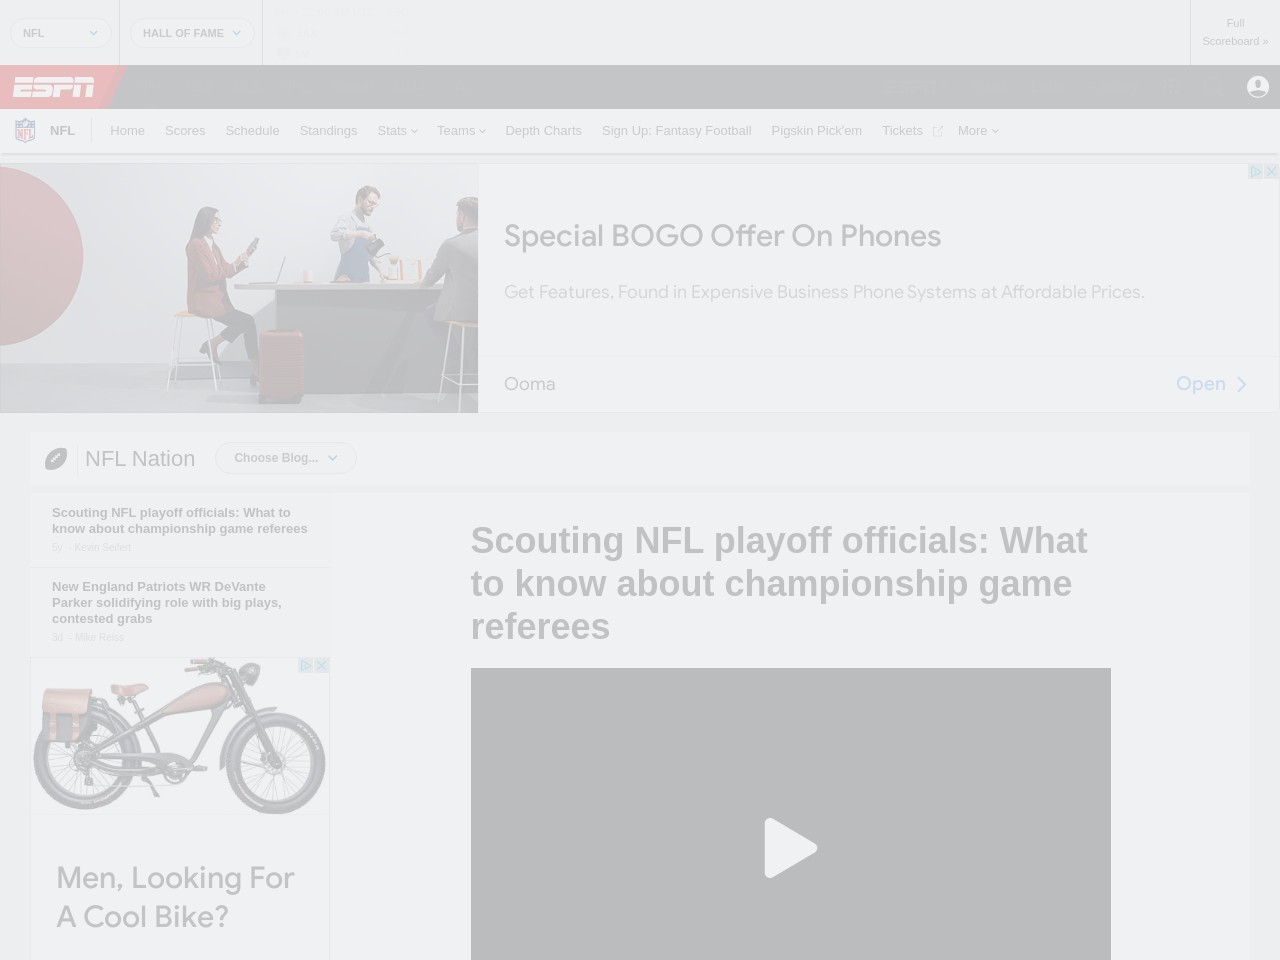 Scouting NFL playoff officials: What to know about championship game referees